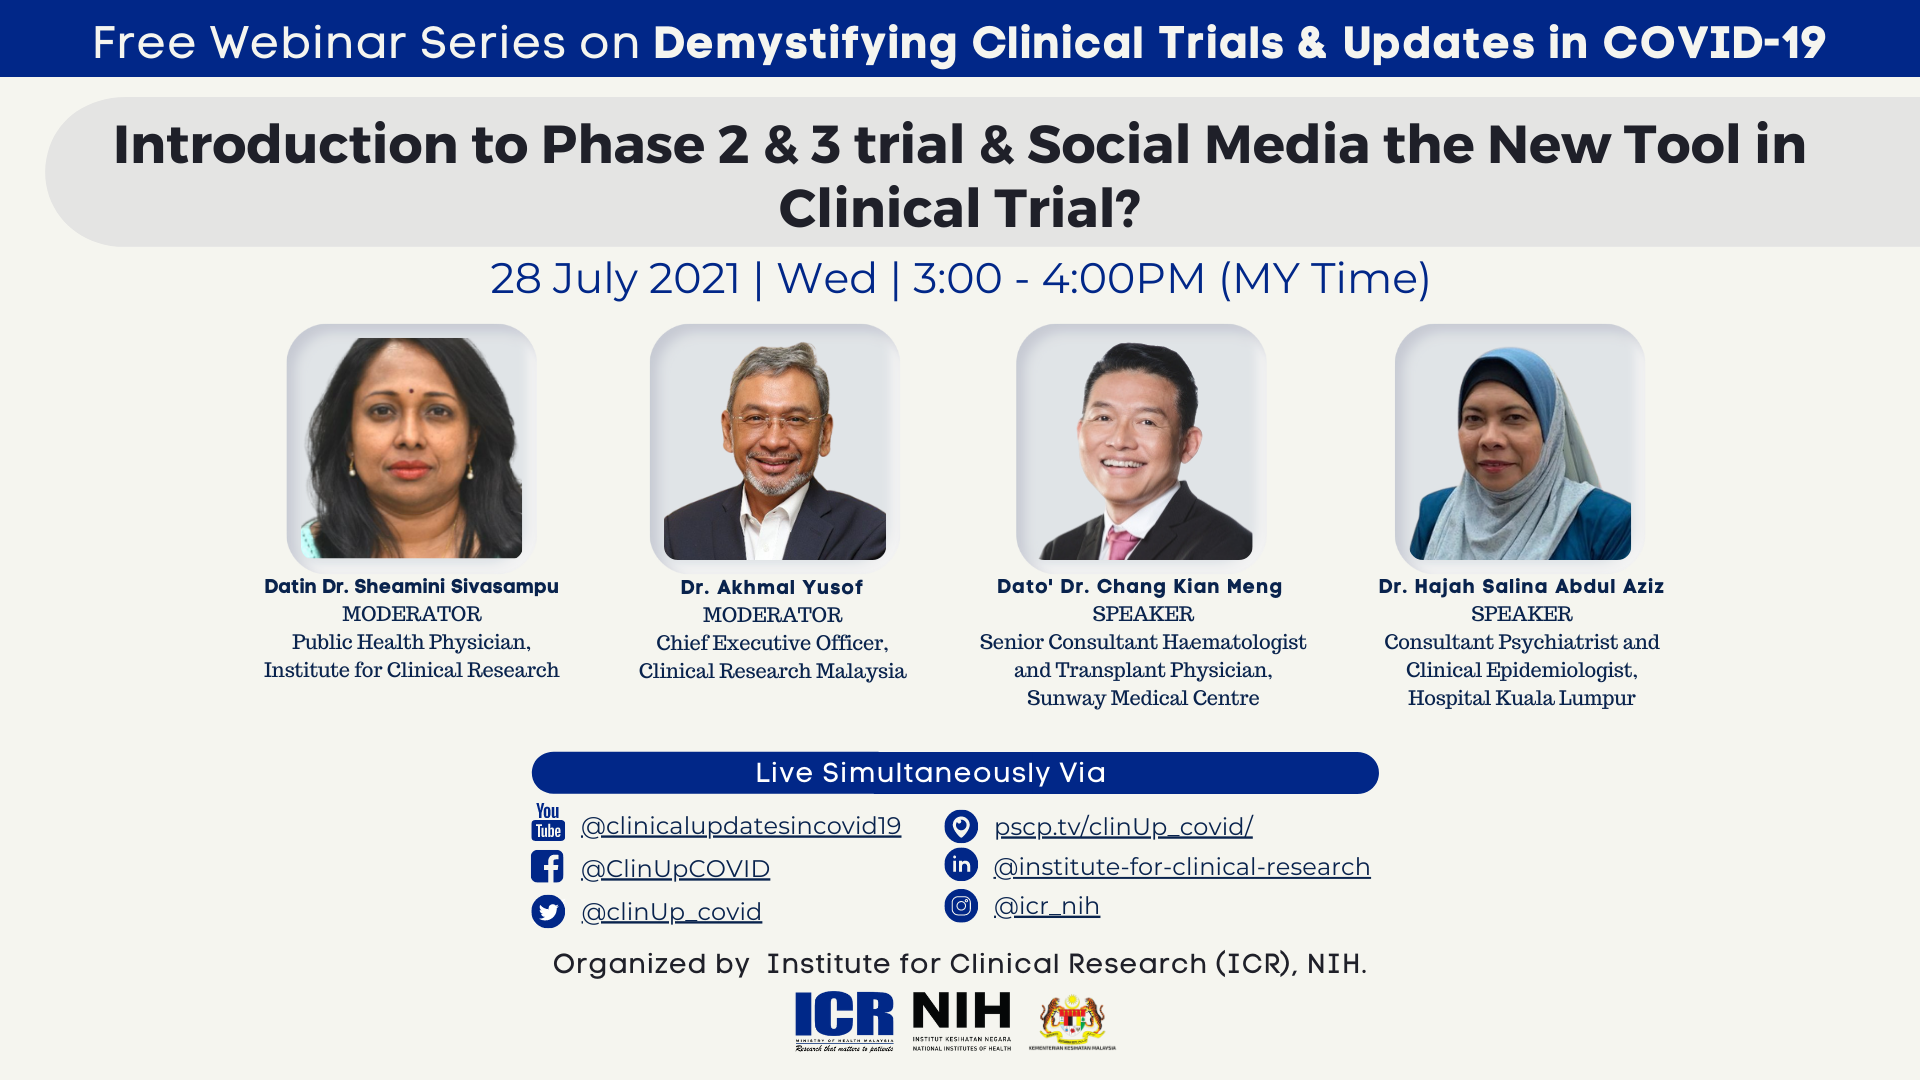 Introduction to Phase 2 & 3 trial & Social Media the New Tool in Clinical Trial?